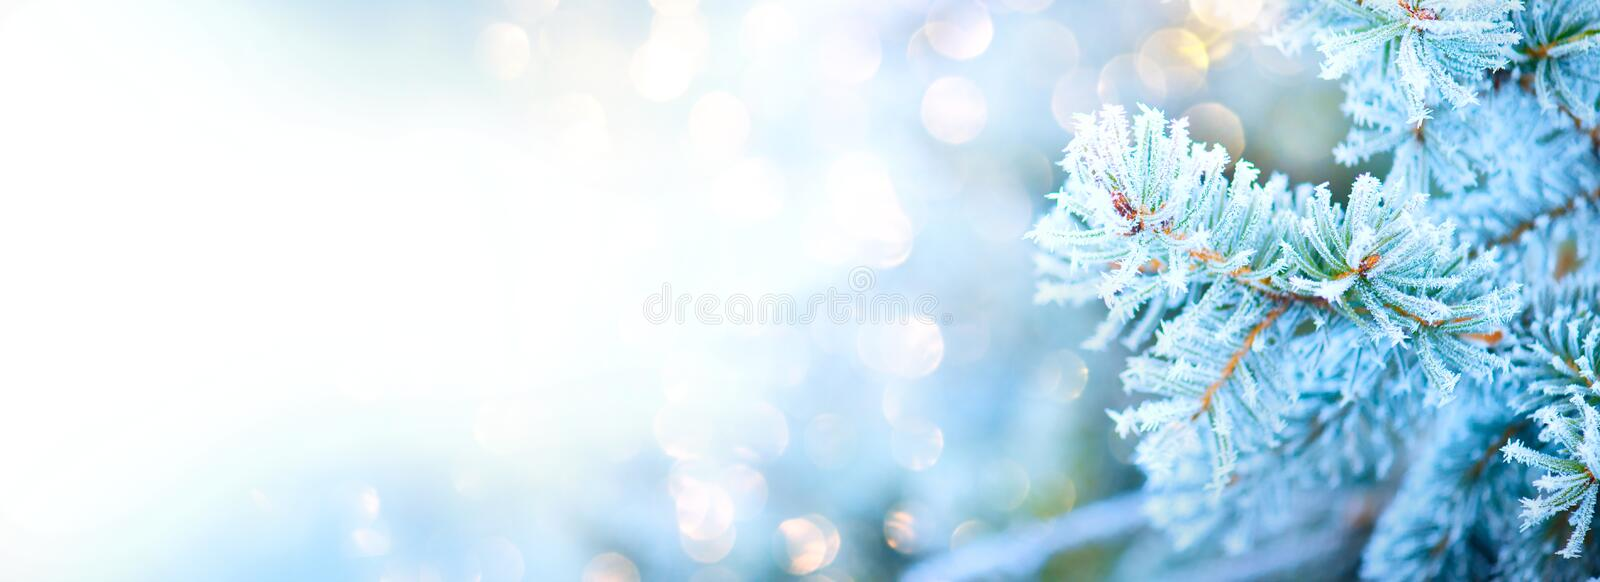 Winter tree holiday snow background. Blue spruce, Christmas and New Year tree border art design, abstract blue backdrop. With snow, widescreen stock photography